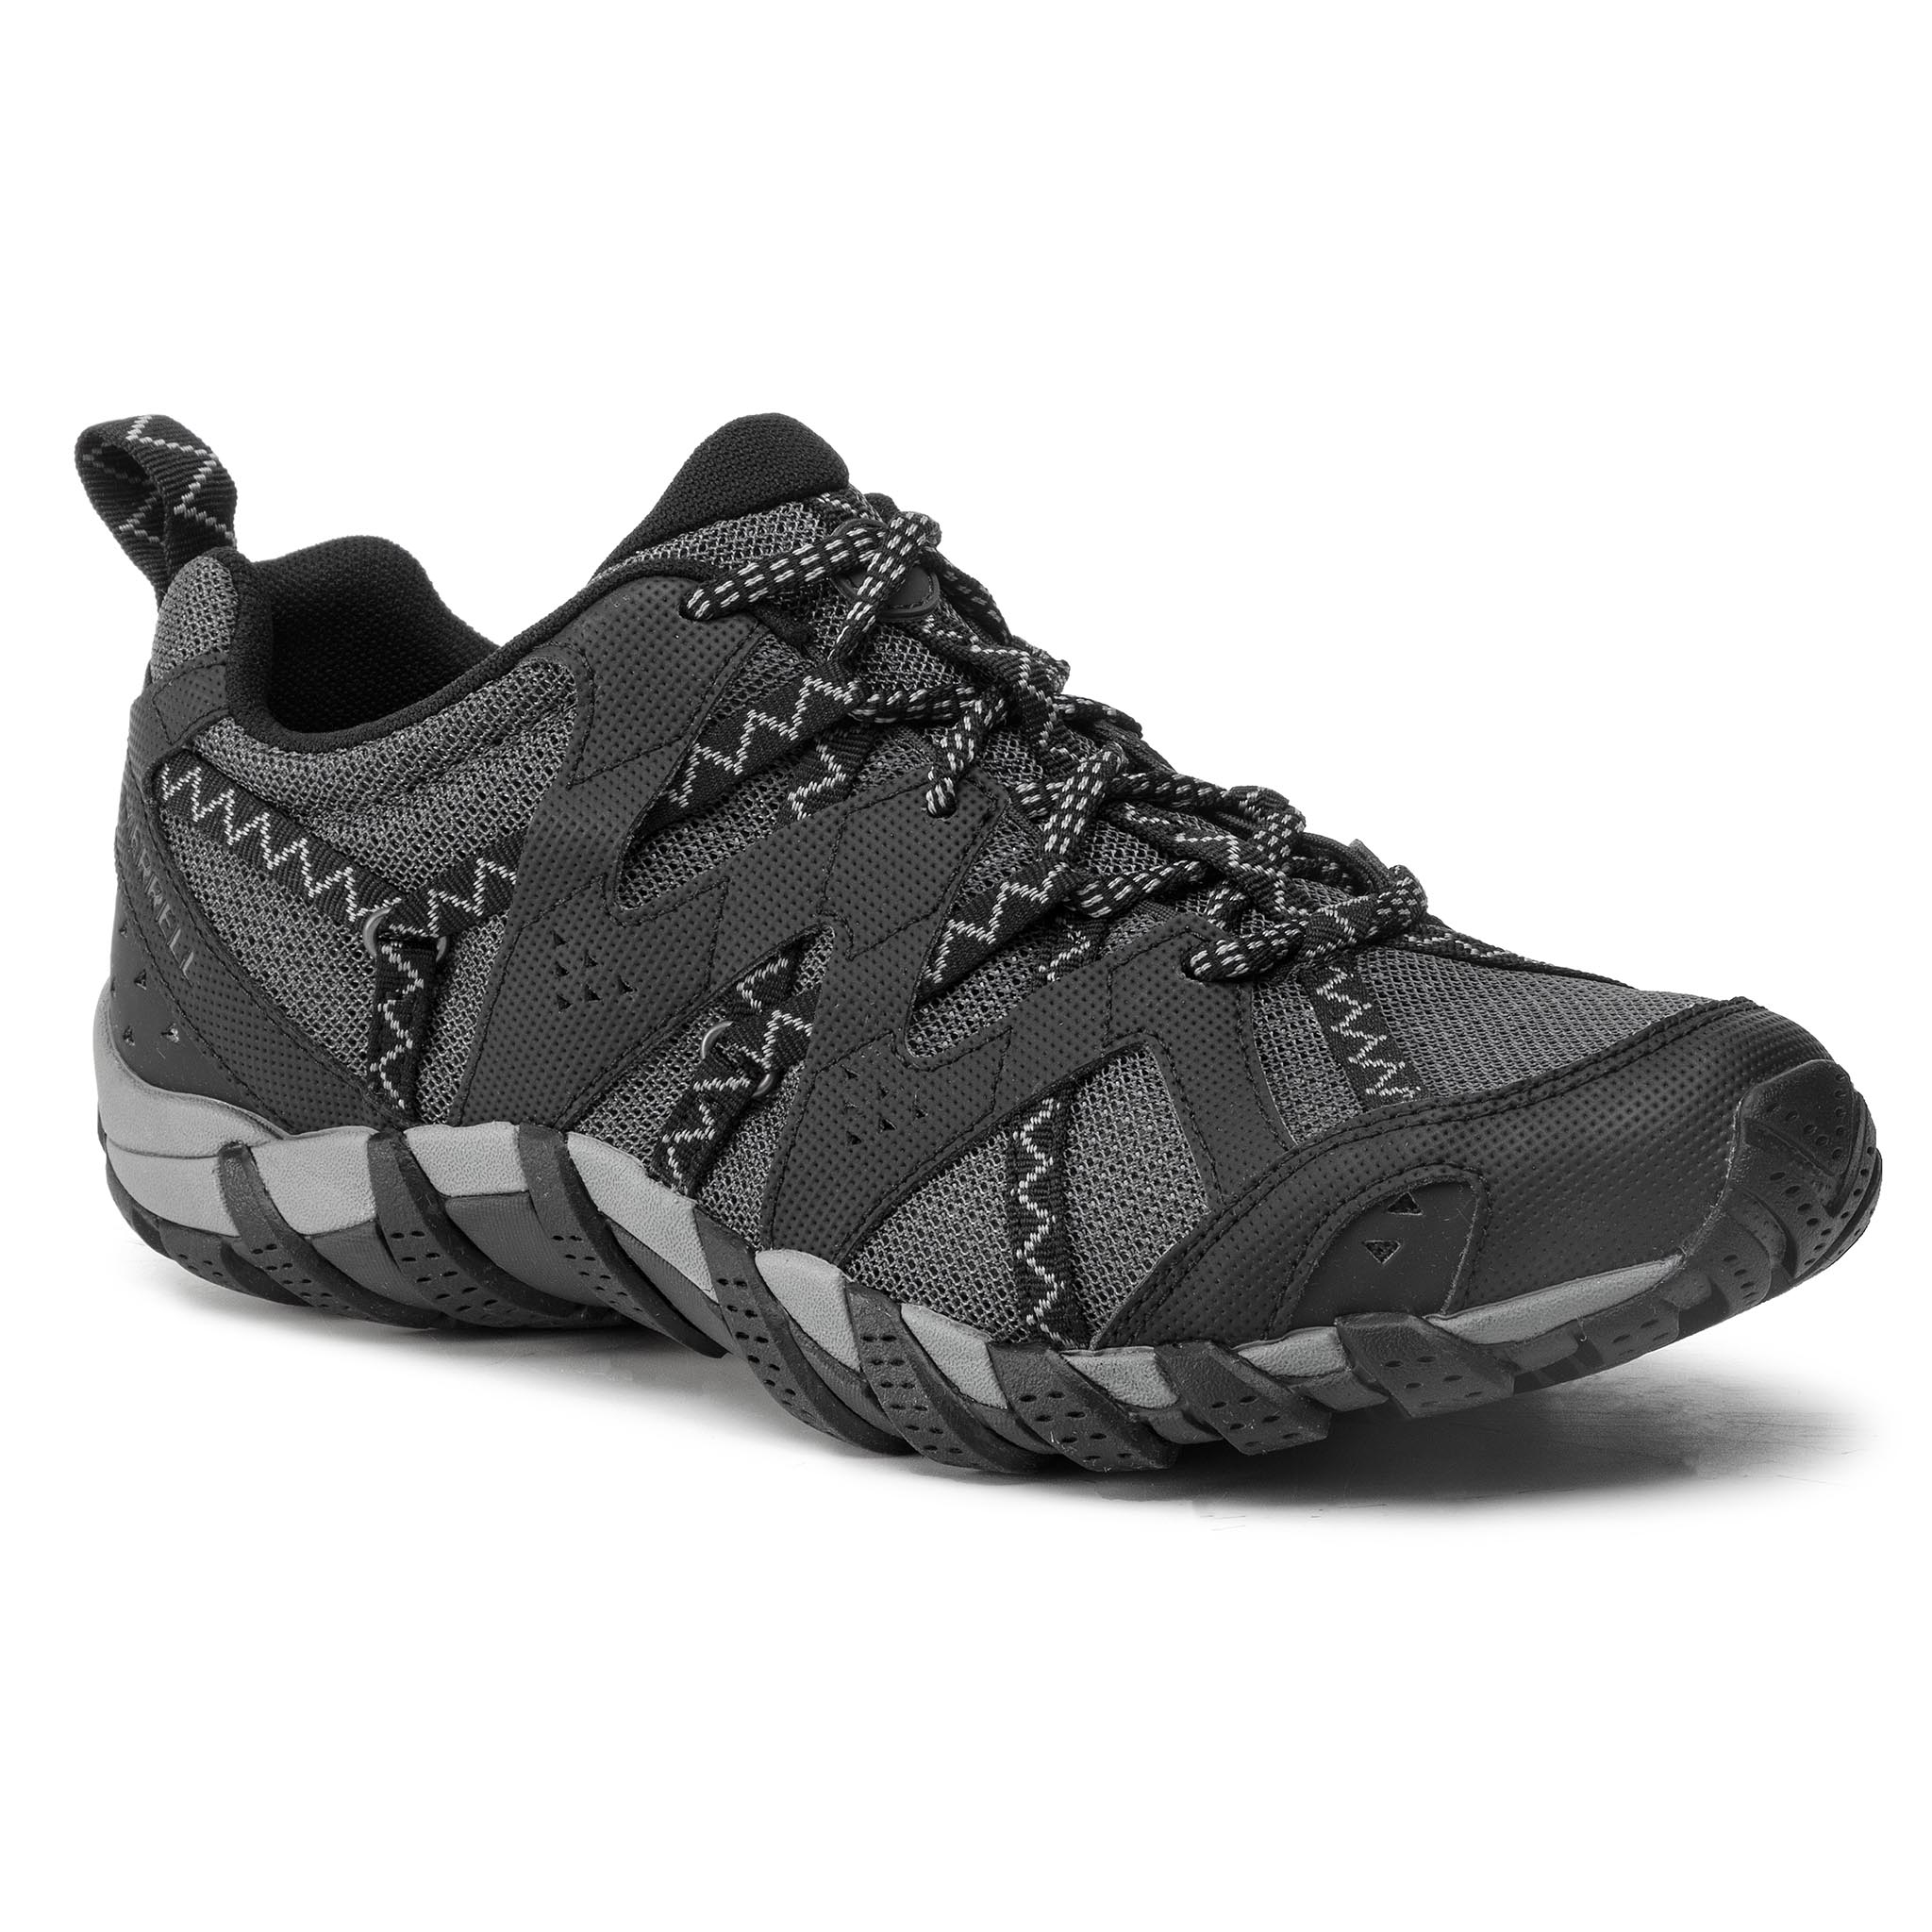 Trekkings Merrell - Waterpro Maipo 2 J48611 Black imagine epantofi.ro 2021